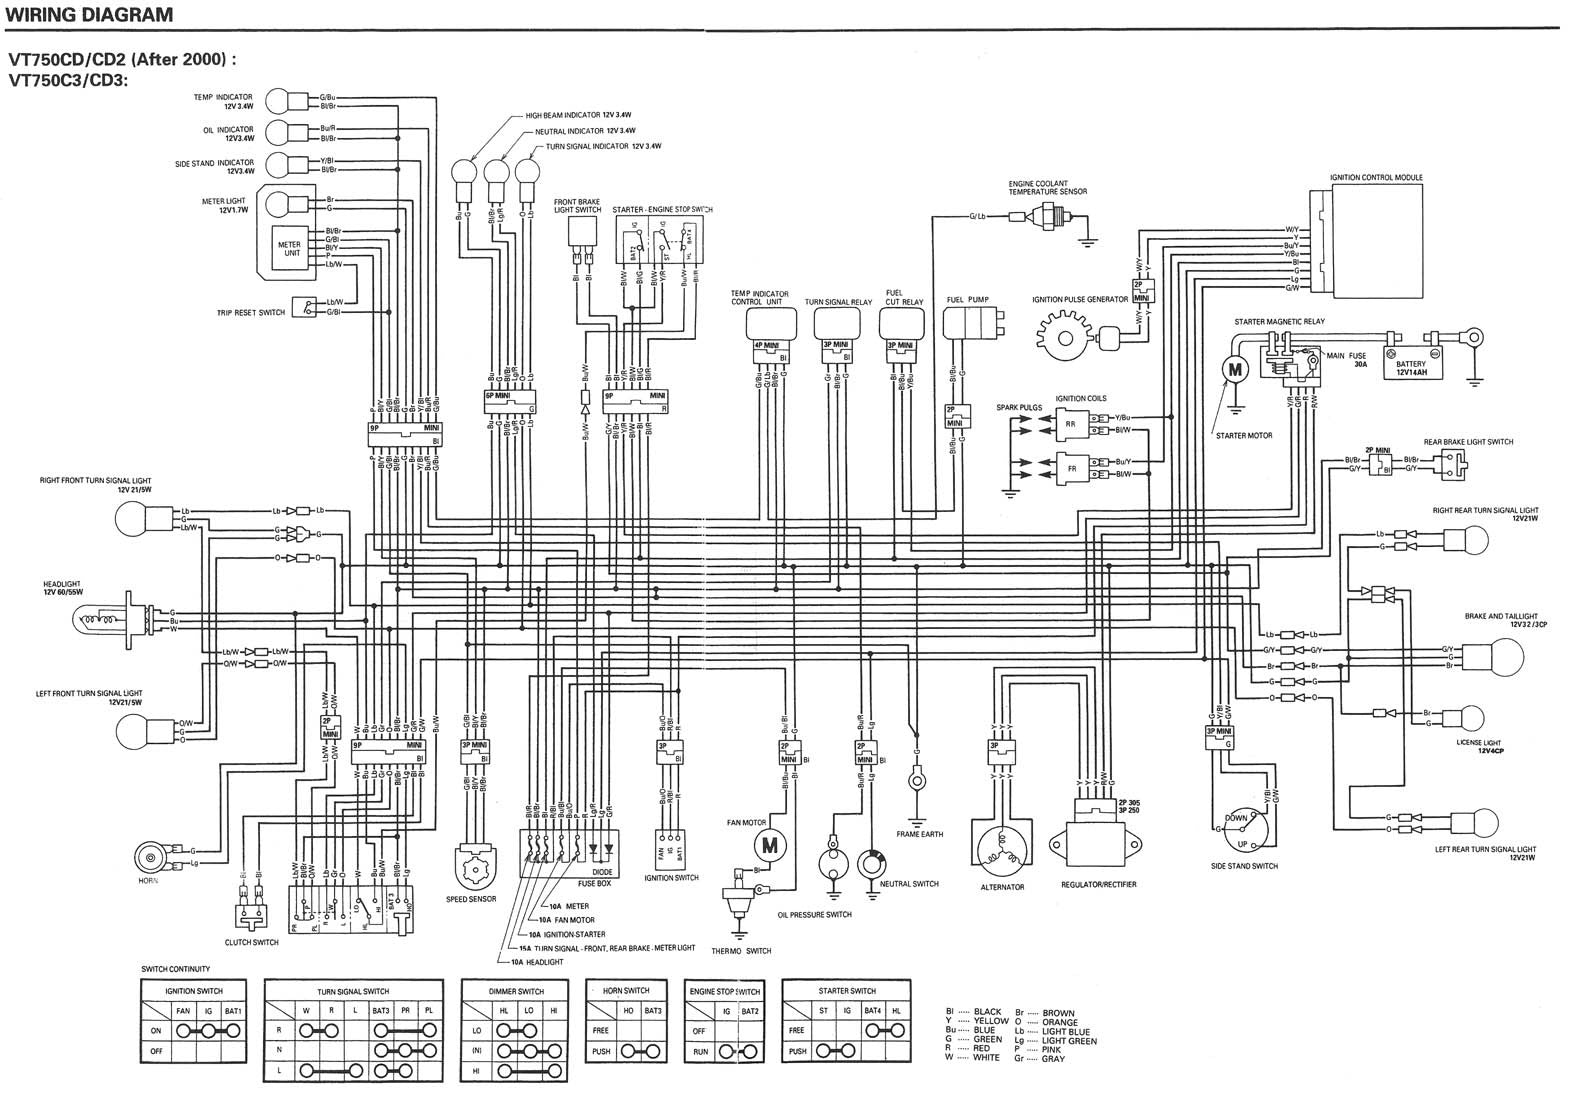 Honda VT750 ACE Wiring Diagram 2001-2003 V.2